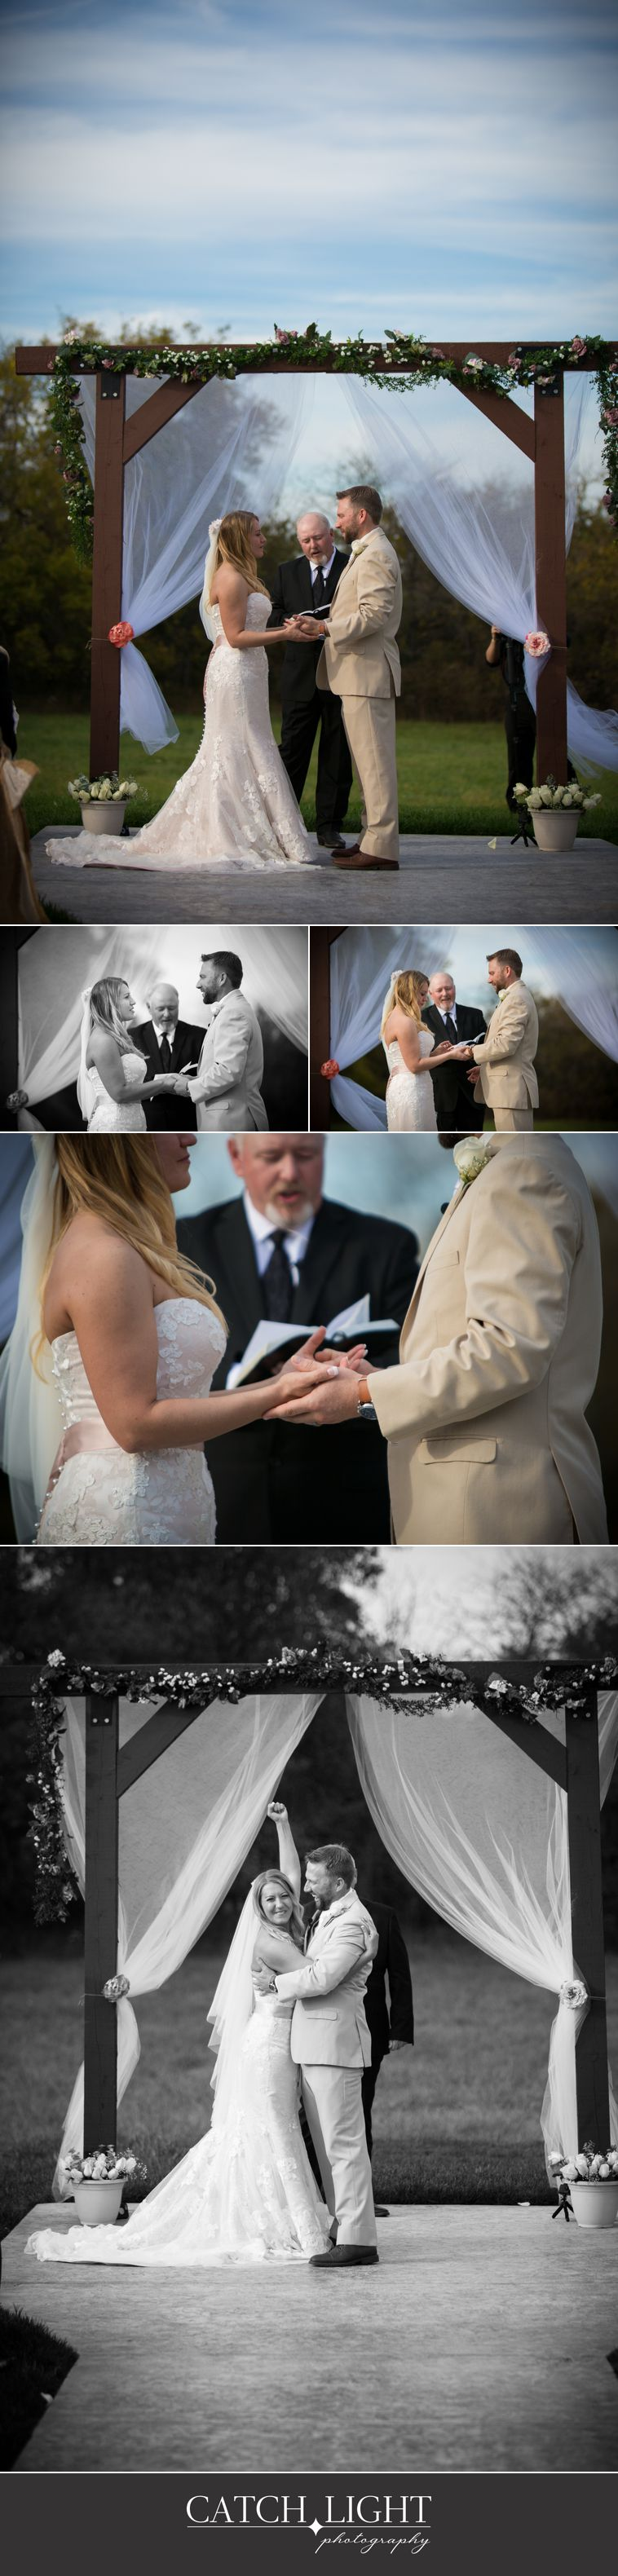 18_kansas-city-wedding-photography